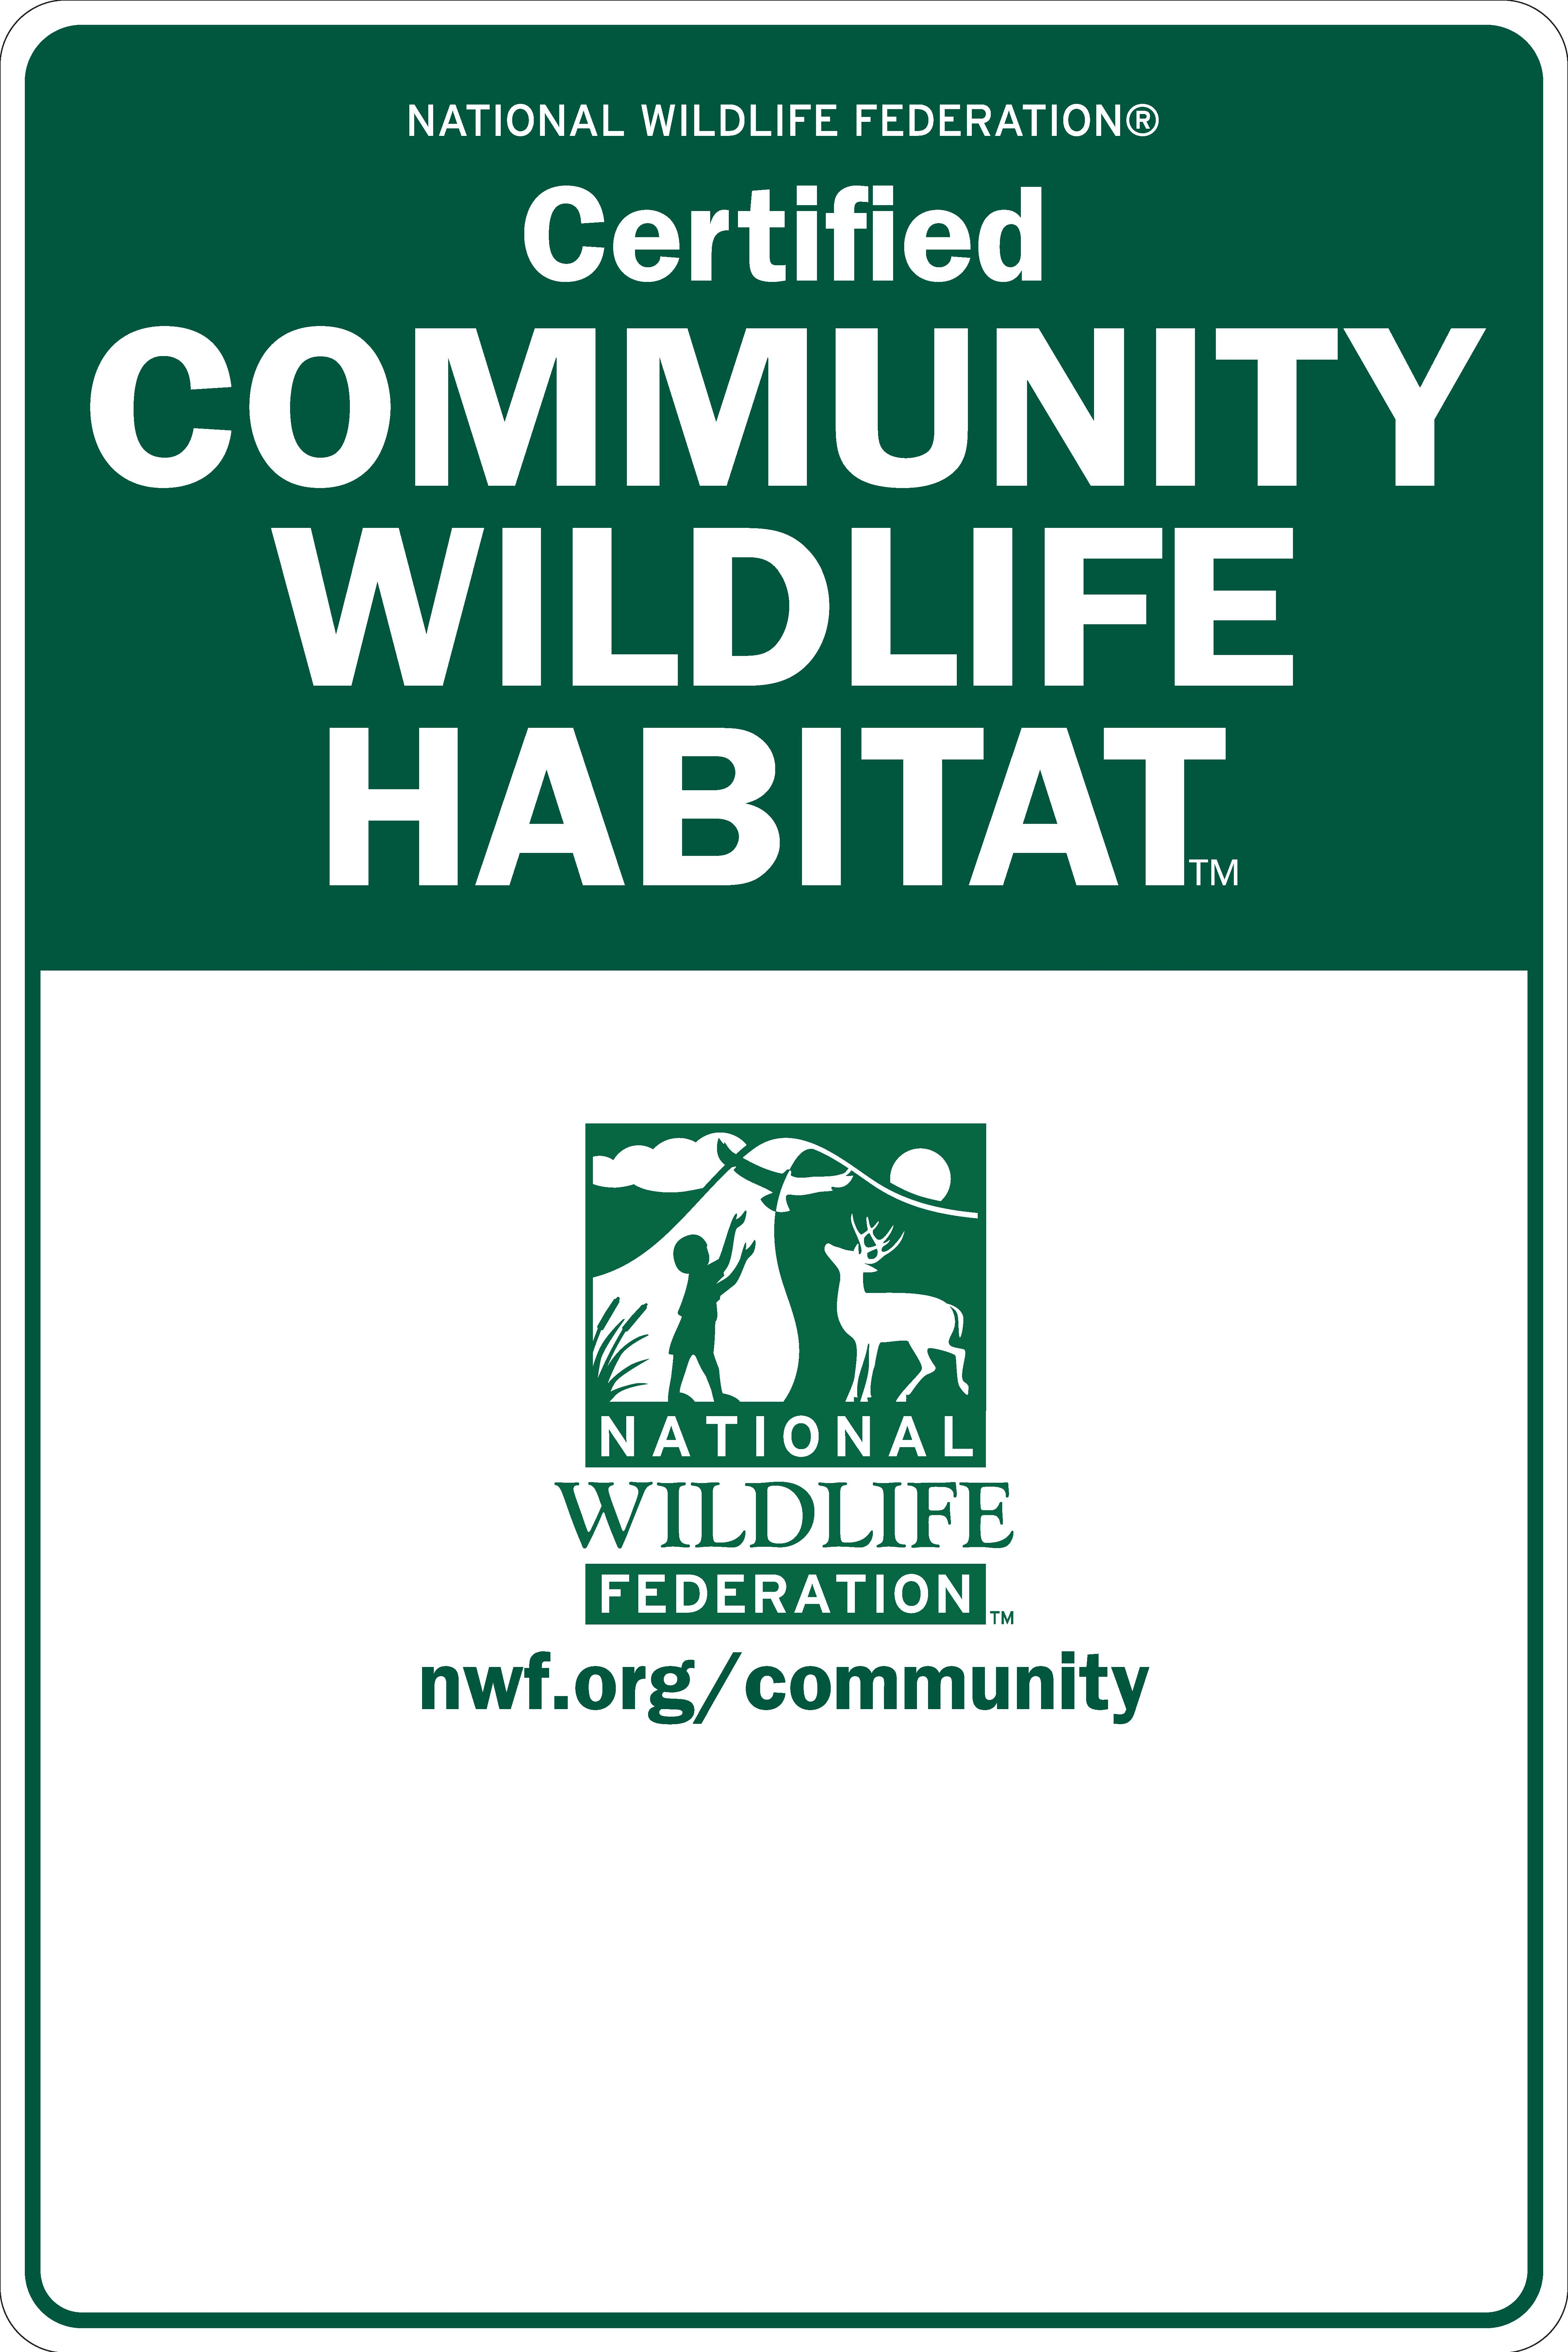 Wildlife Habitat Sign.jpg